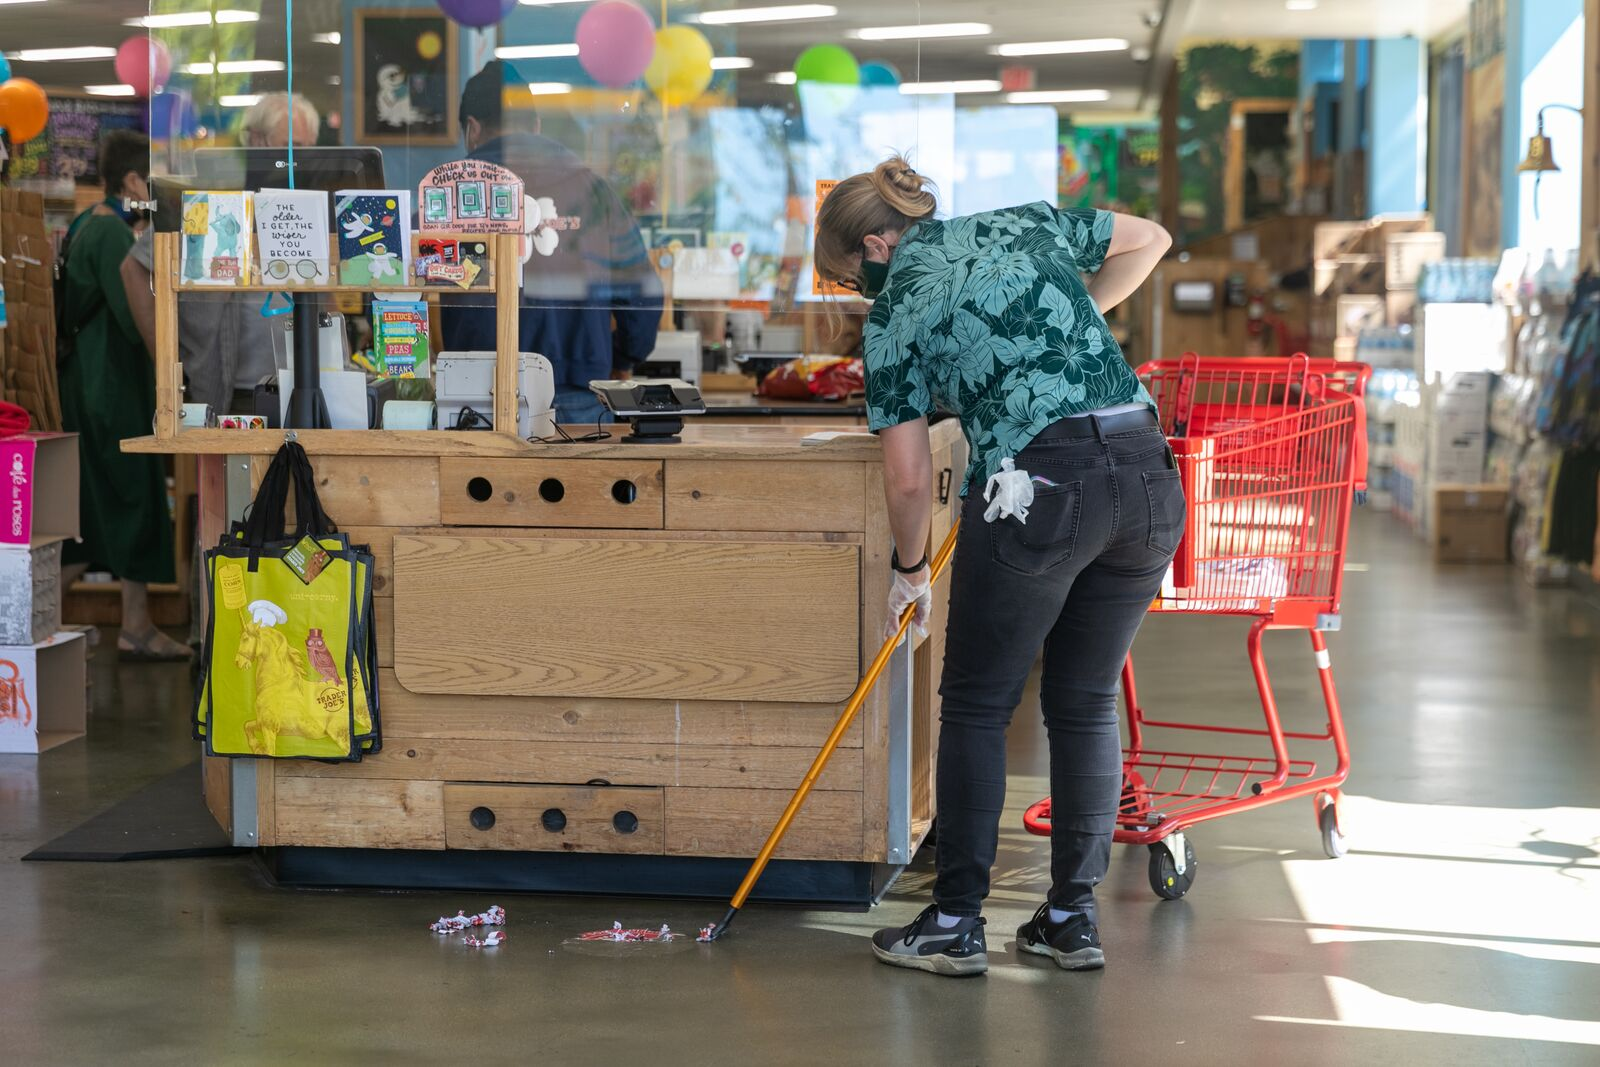 A Trader Joe's manager scrapes the 6-foot distance stickers off the floor on June 15, 2021. Credit: Kelly Sullivan